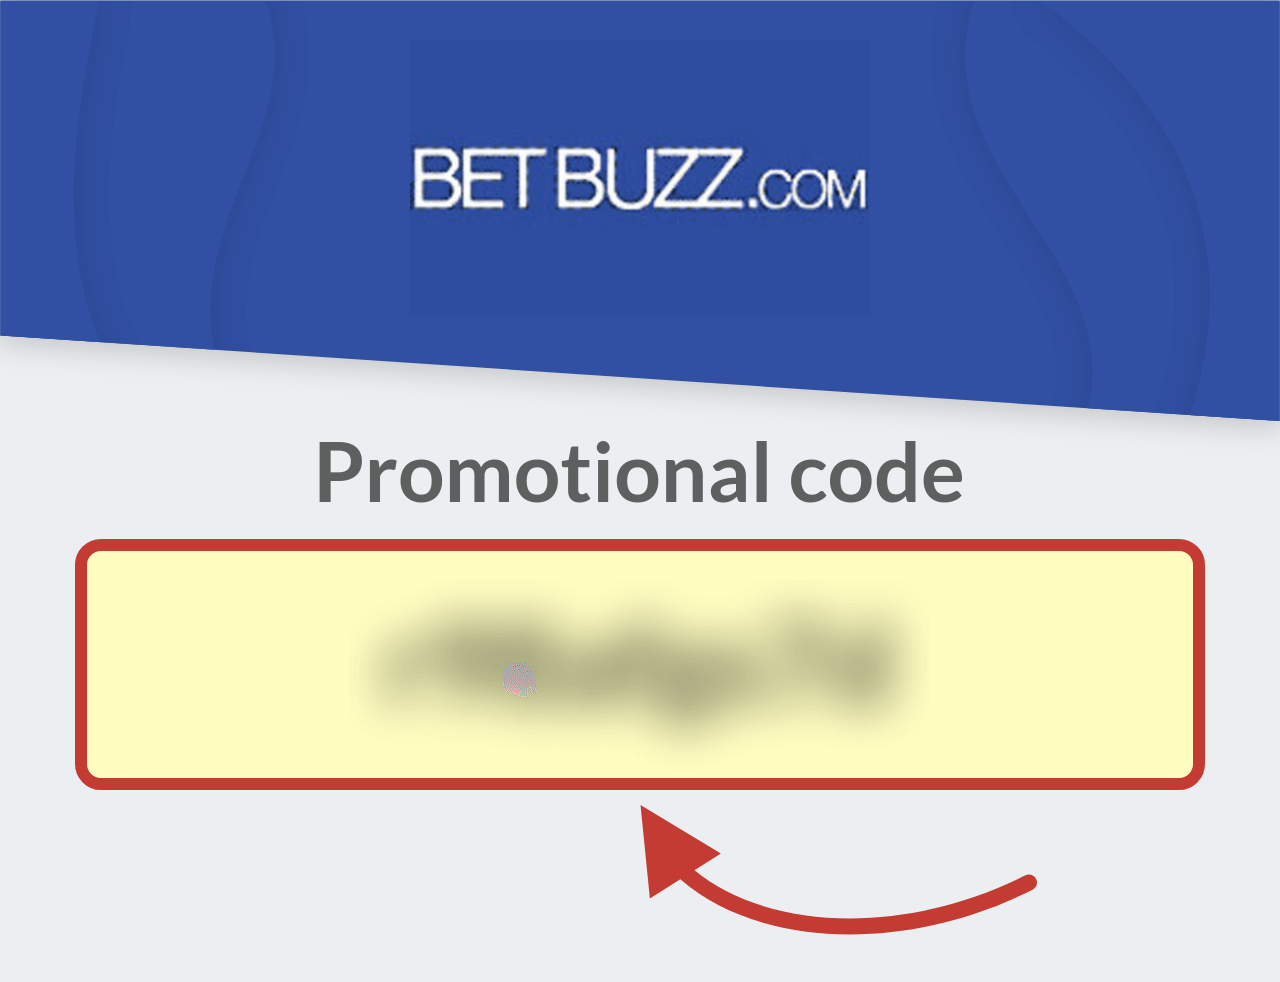 Betbuzz Promotional Code